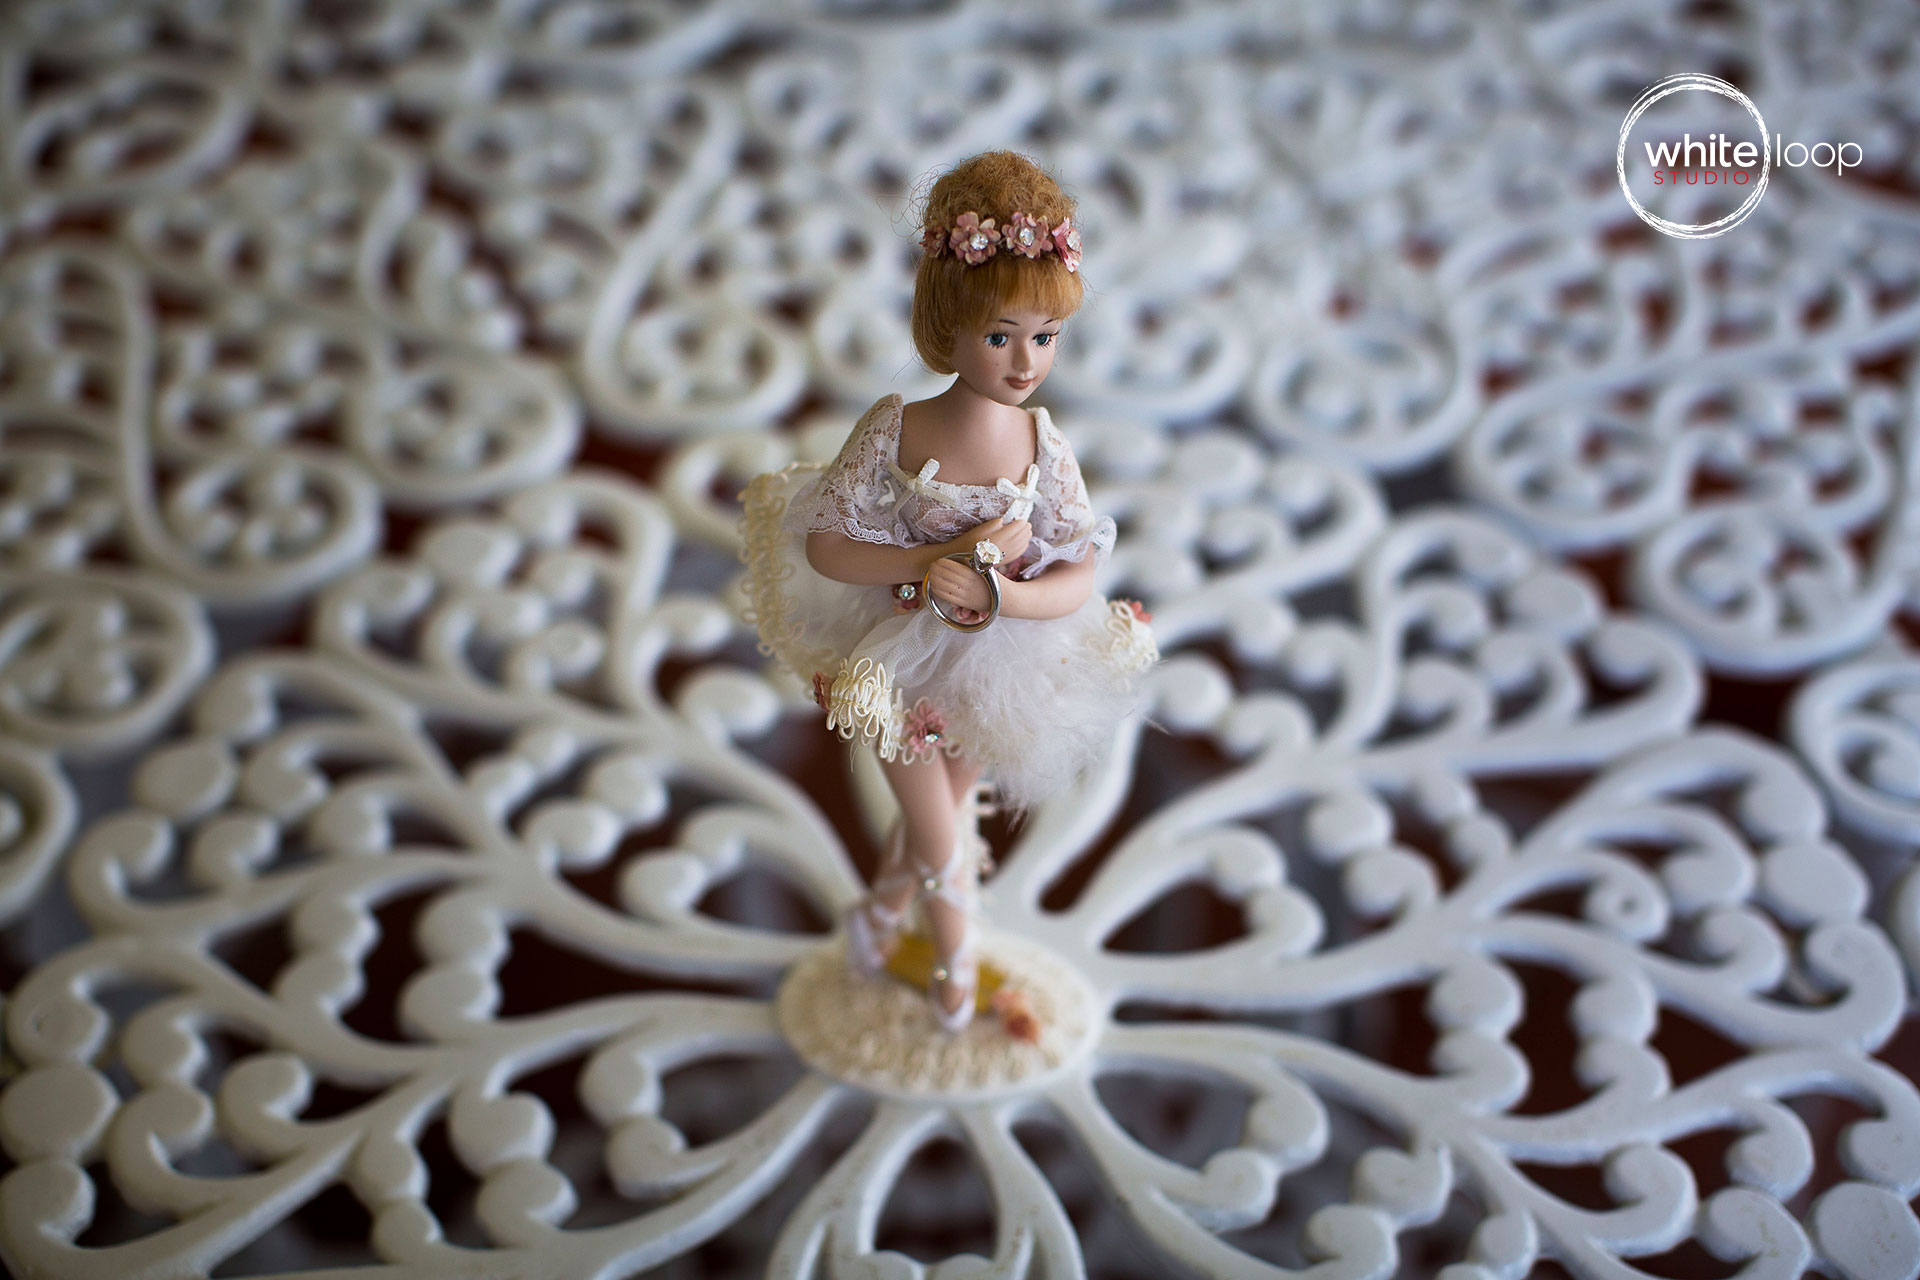 Wedding doll set in the middle of the table.